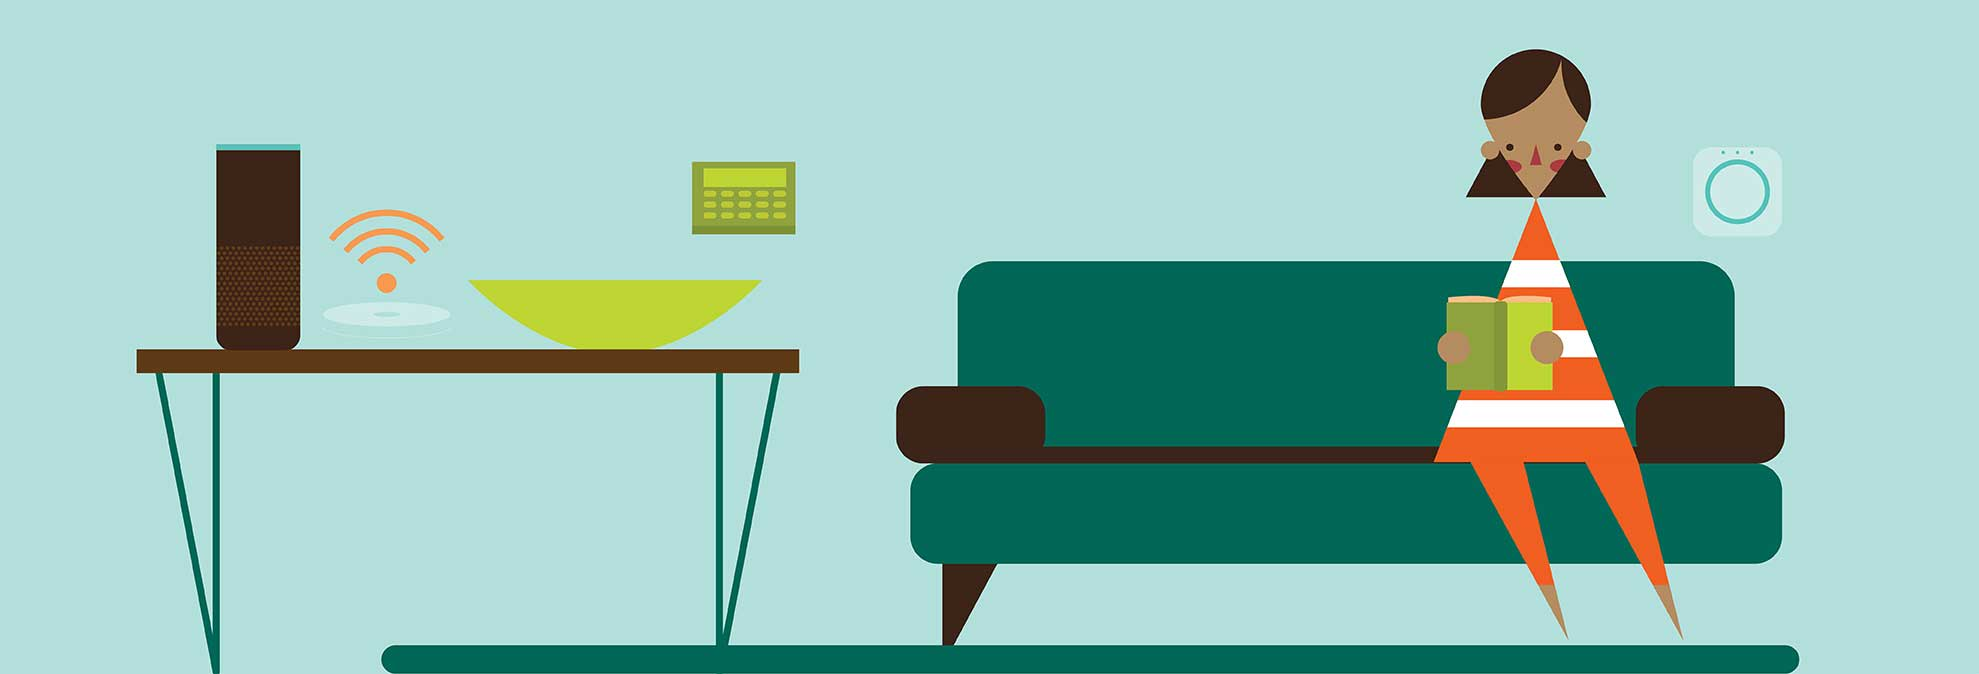 6 Small Tech Upgrades for Your Home That Make a Big Difference